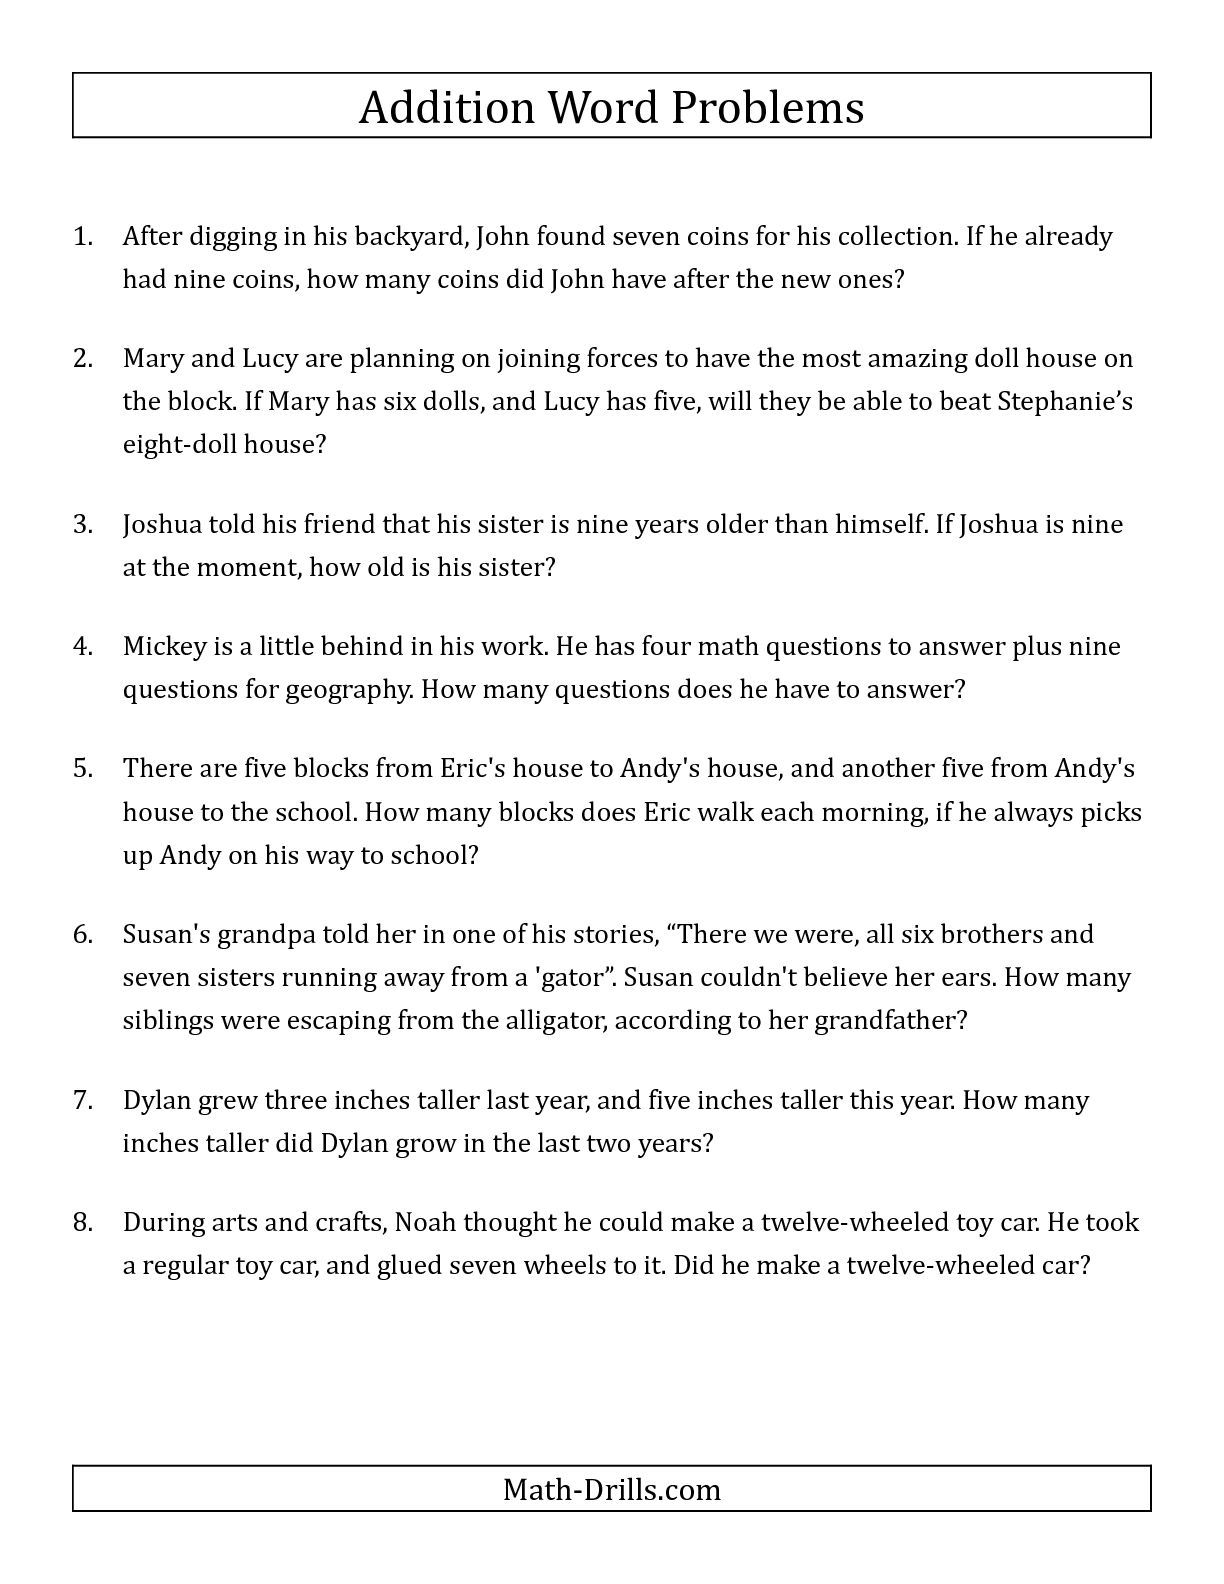 The Single Step Addition Word Problems Using Single Digit Numbers A Word Problems Worksheet